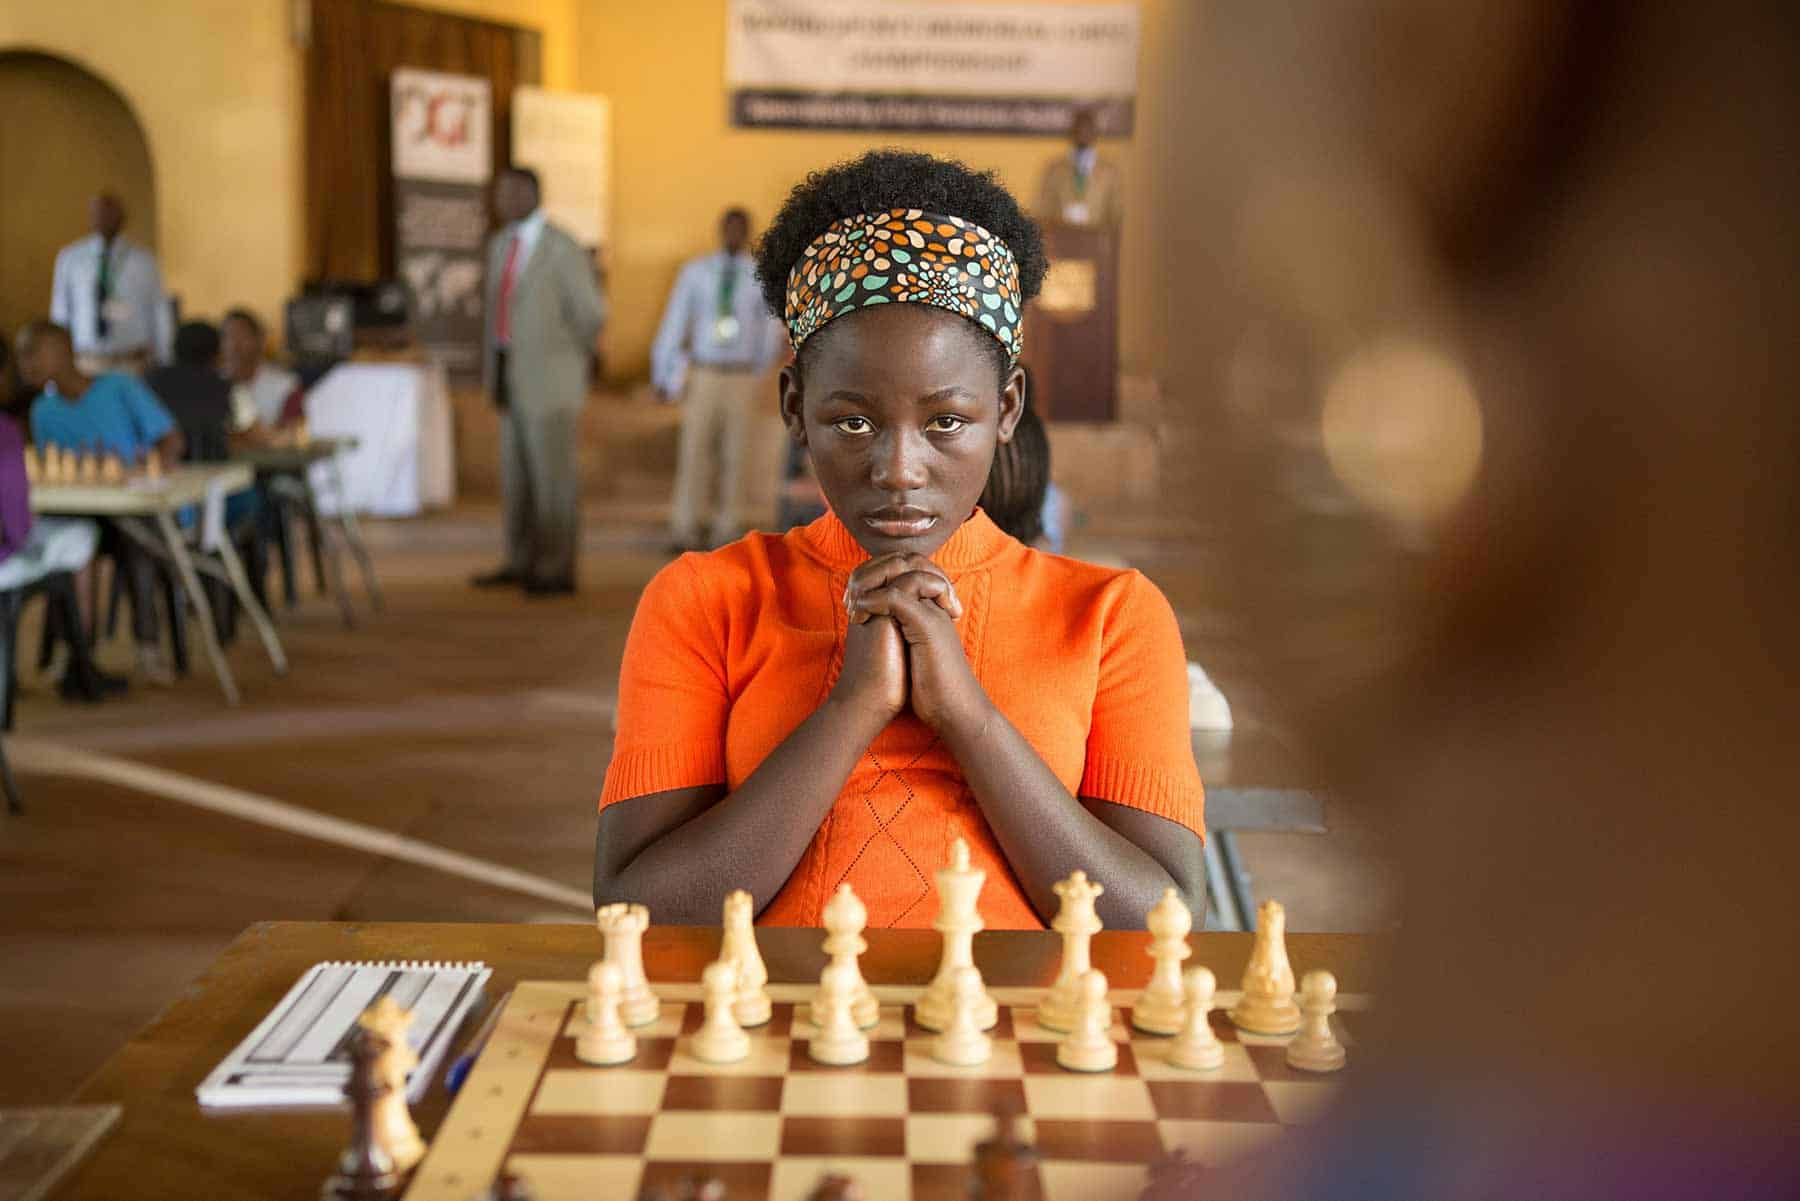 Queen of Katwe Exclusive Advanced Movie Screening - The game of chess